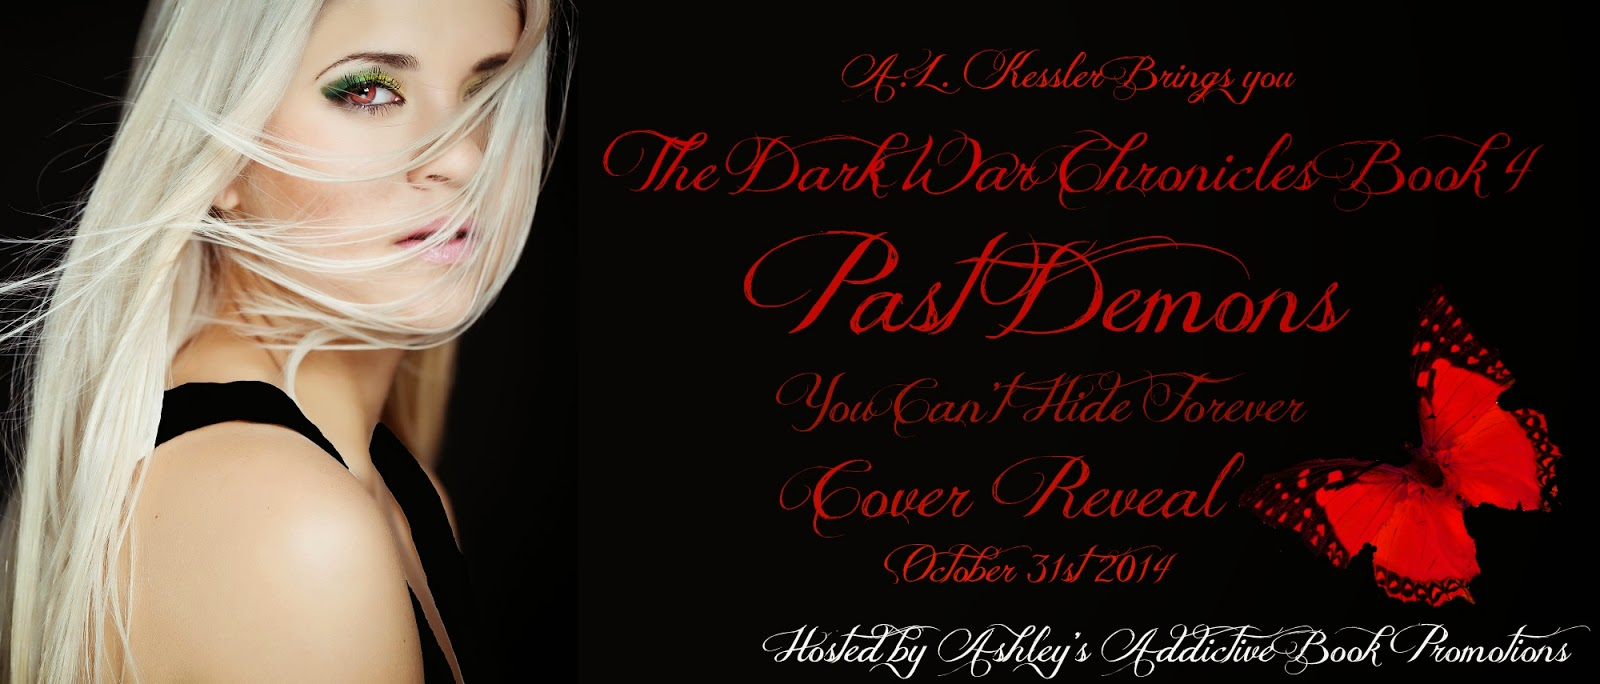 Cover Reveal: Past Demons by A.L. Kessler